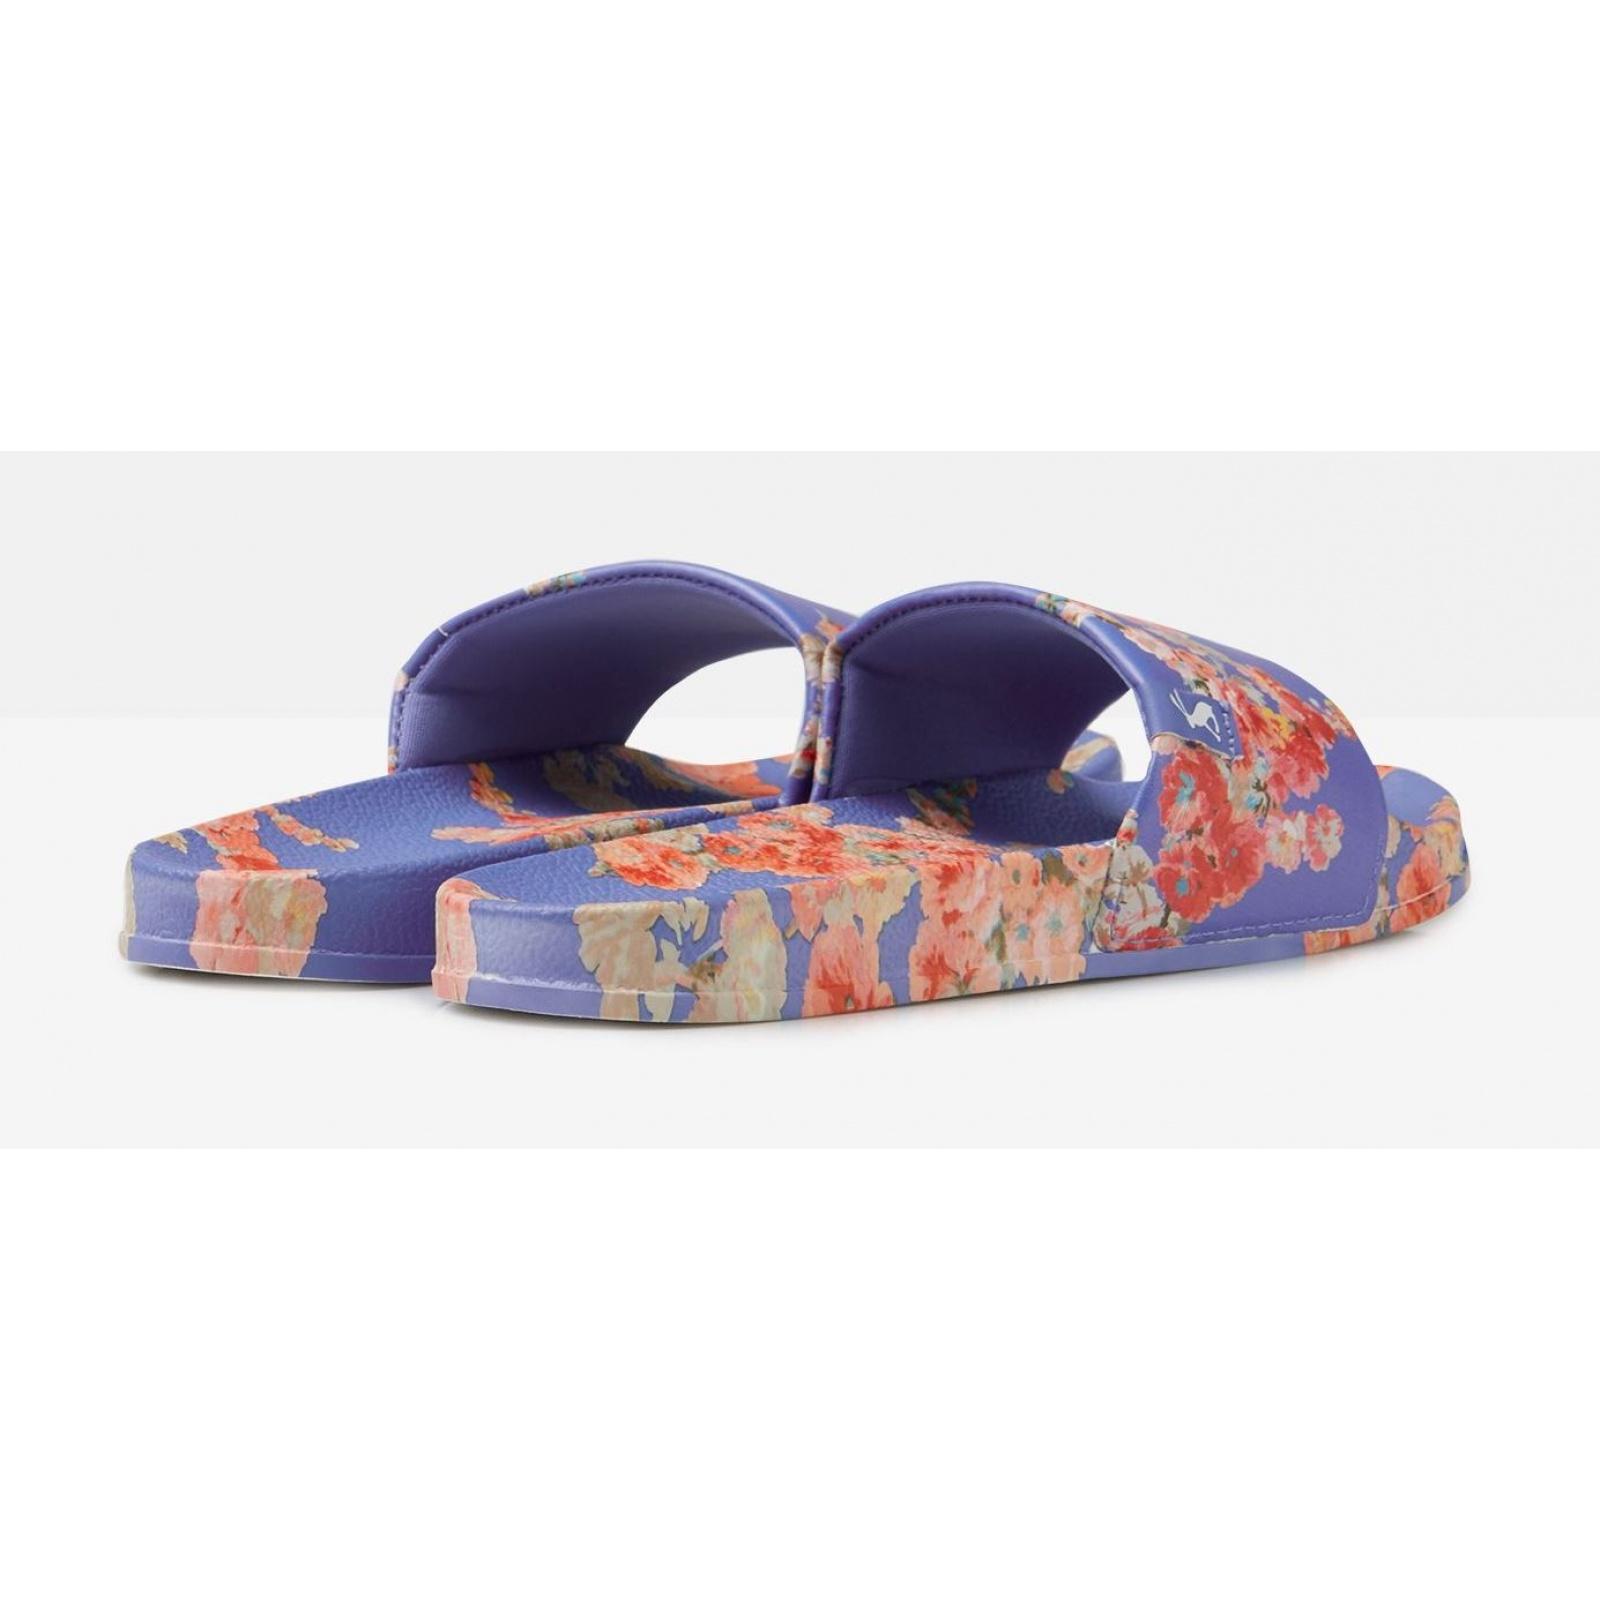 Joules-Poolside-PU-Sliders-Beach-Holiday-Shoes-SS19 miniature 4